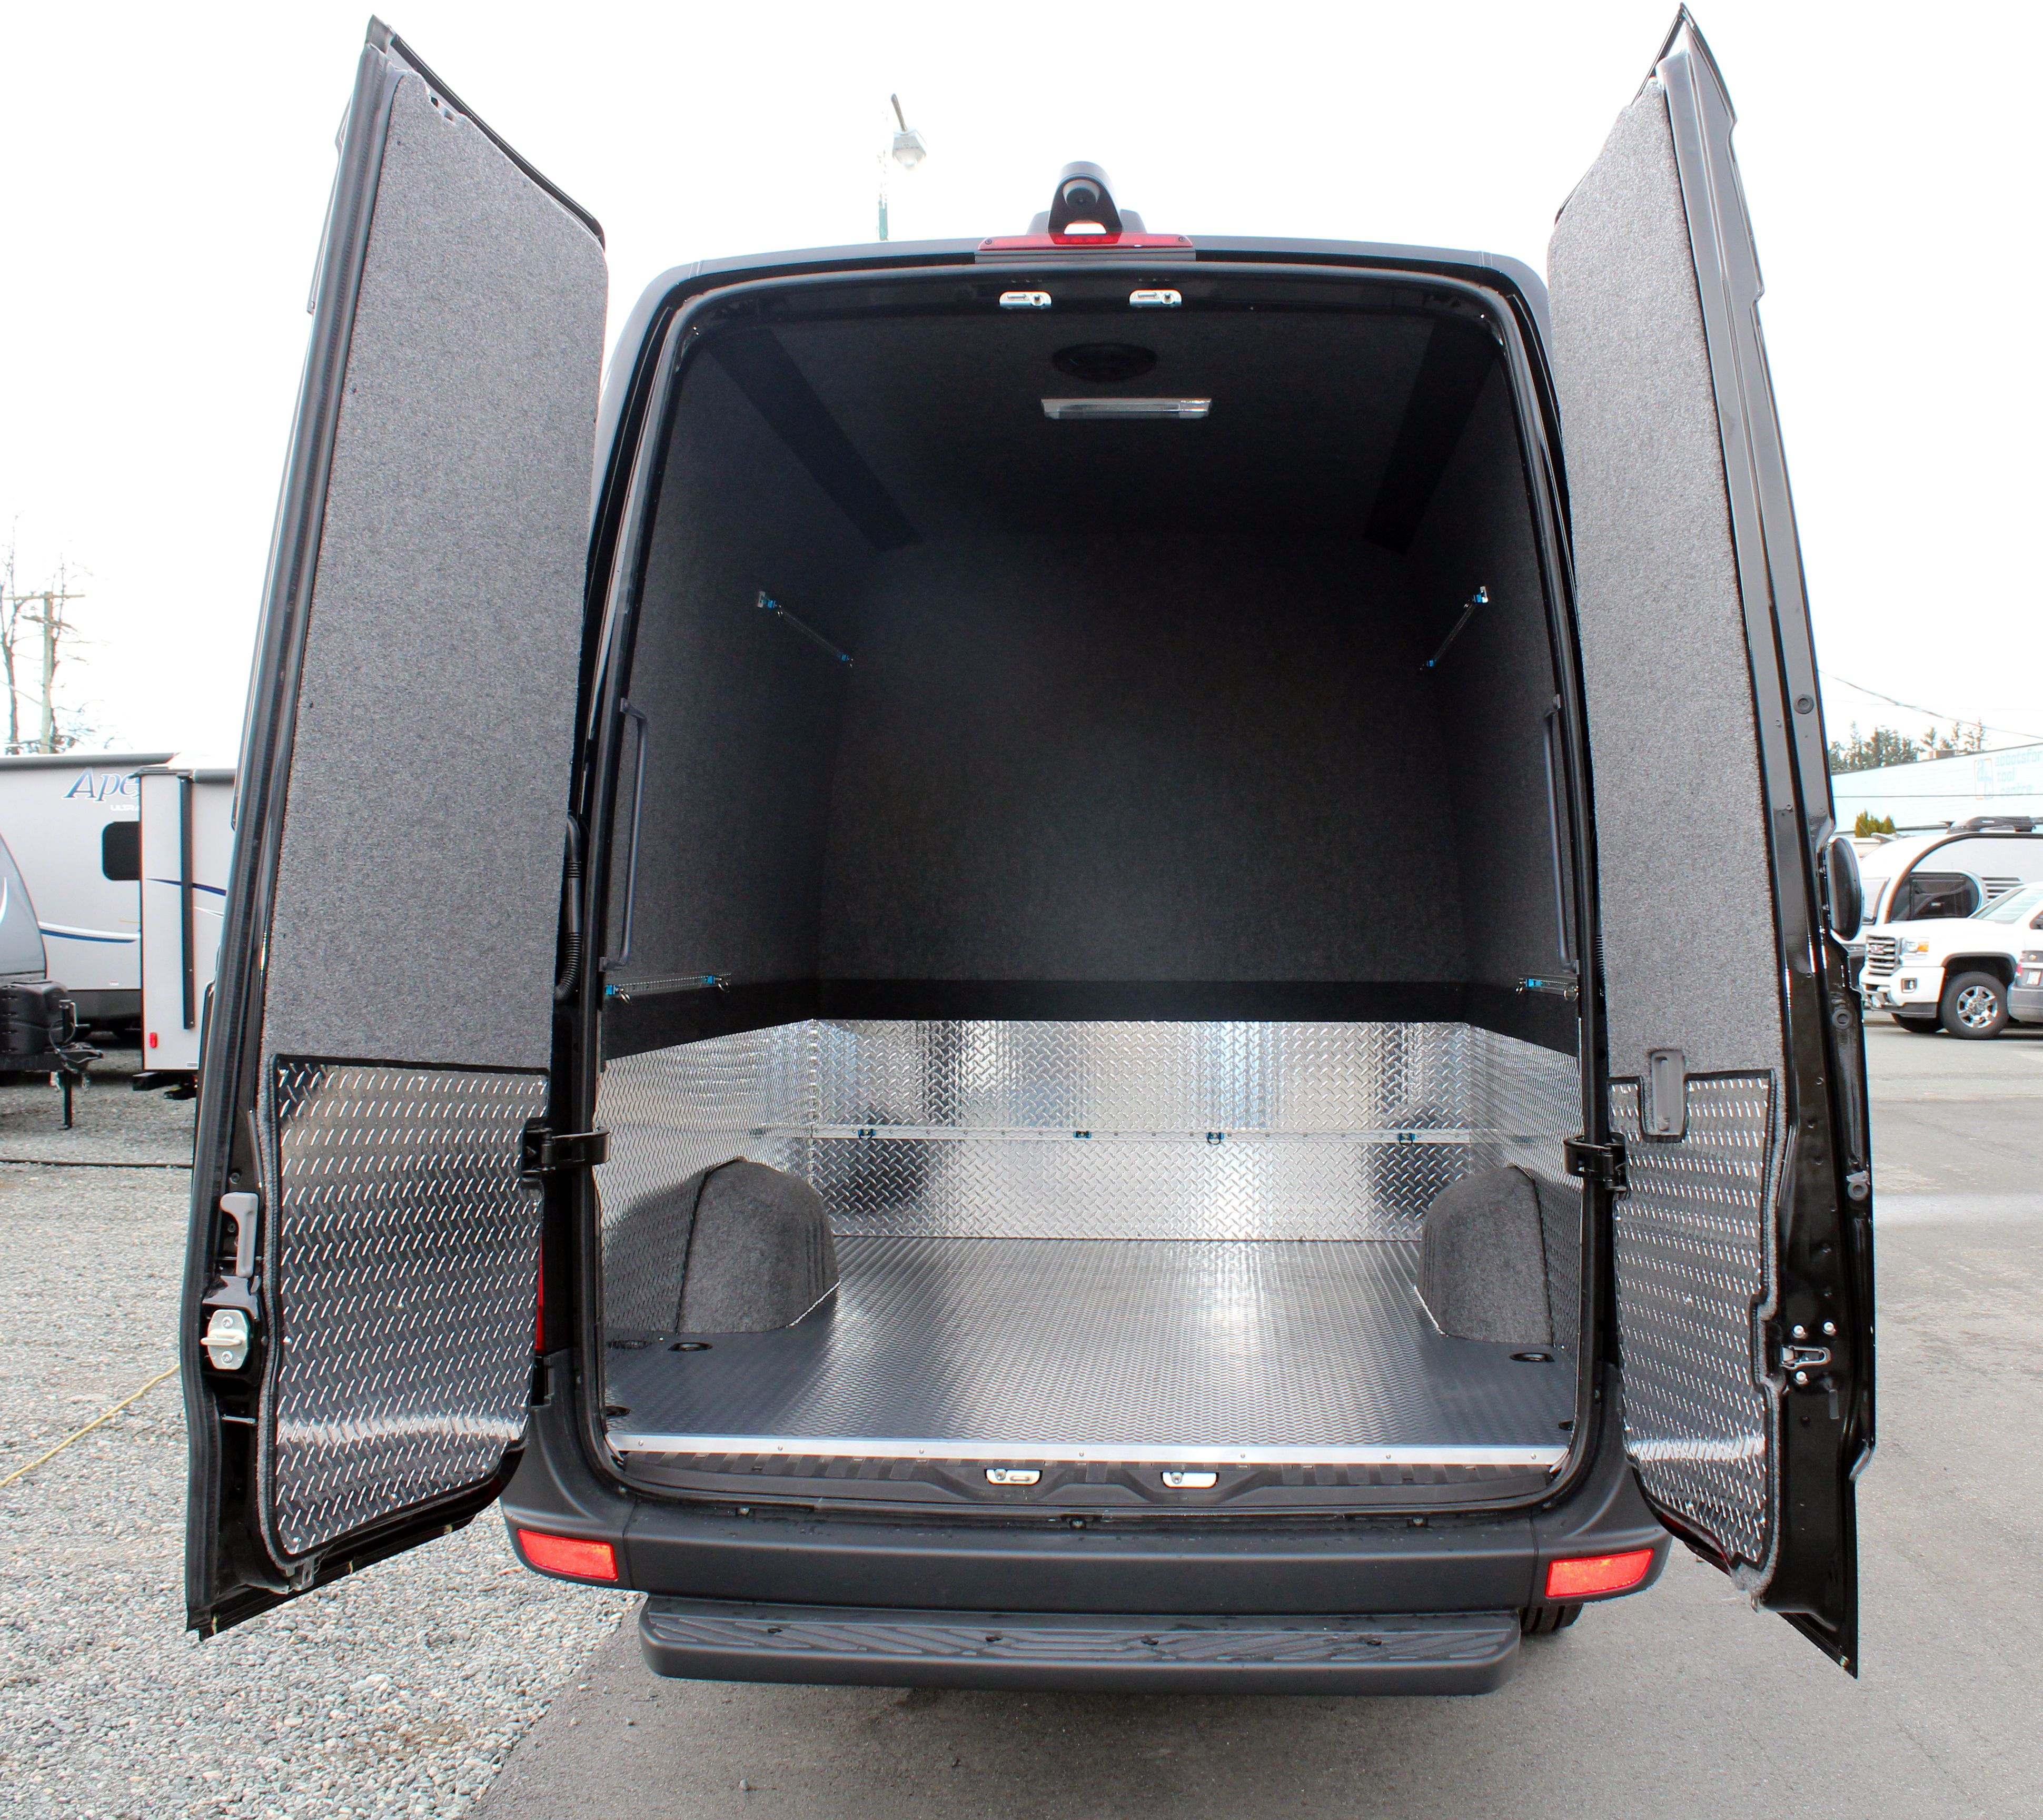 blog small mercedes light a travel tail assembly broken diy dsc van repairing awnings living sprinter awning